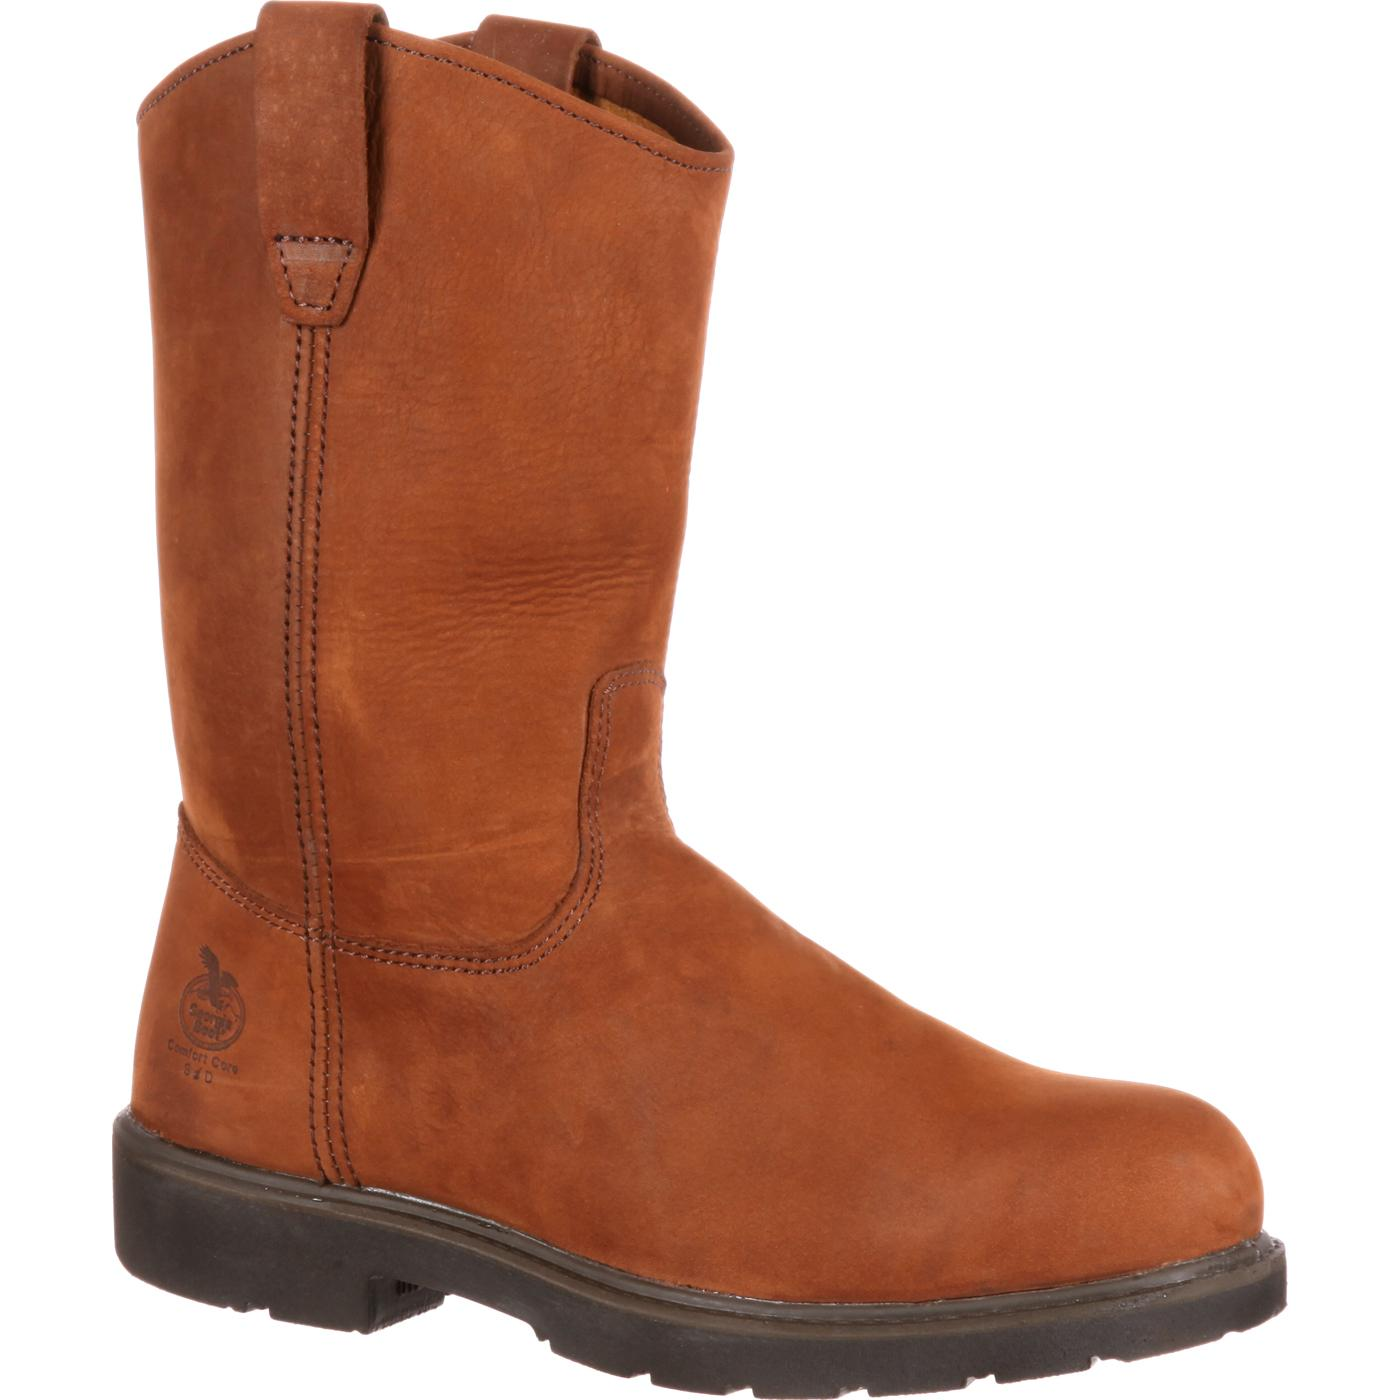 Georgia Boot: Men's Pull-On Steel Toe Work Boots, #G4673